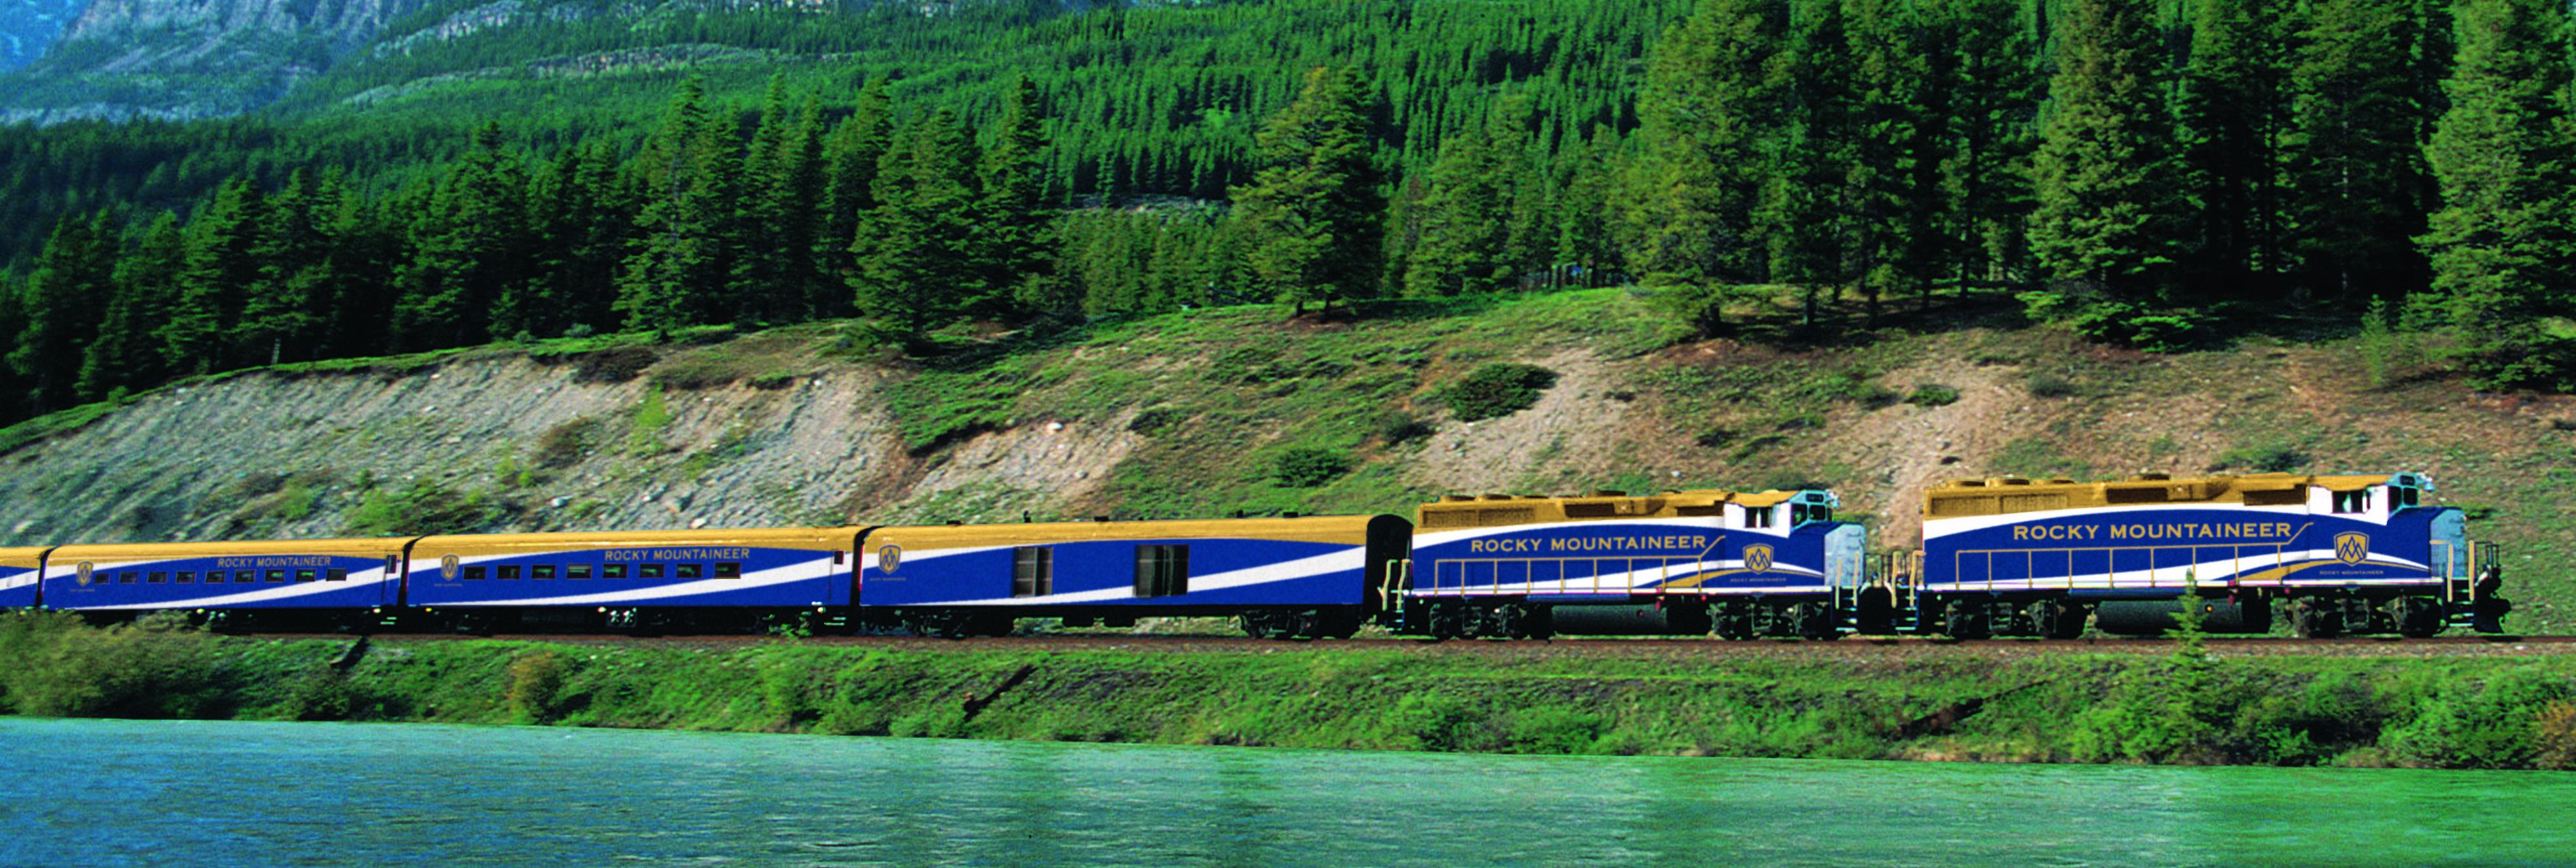 Rocky Mountaineer Releases 25th Anniversary Brochure